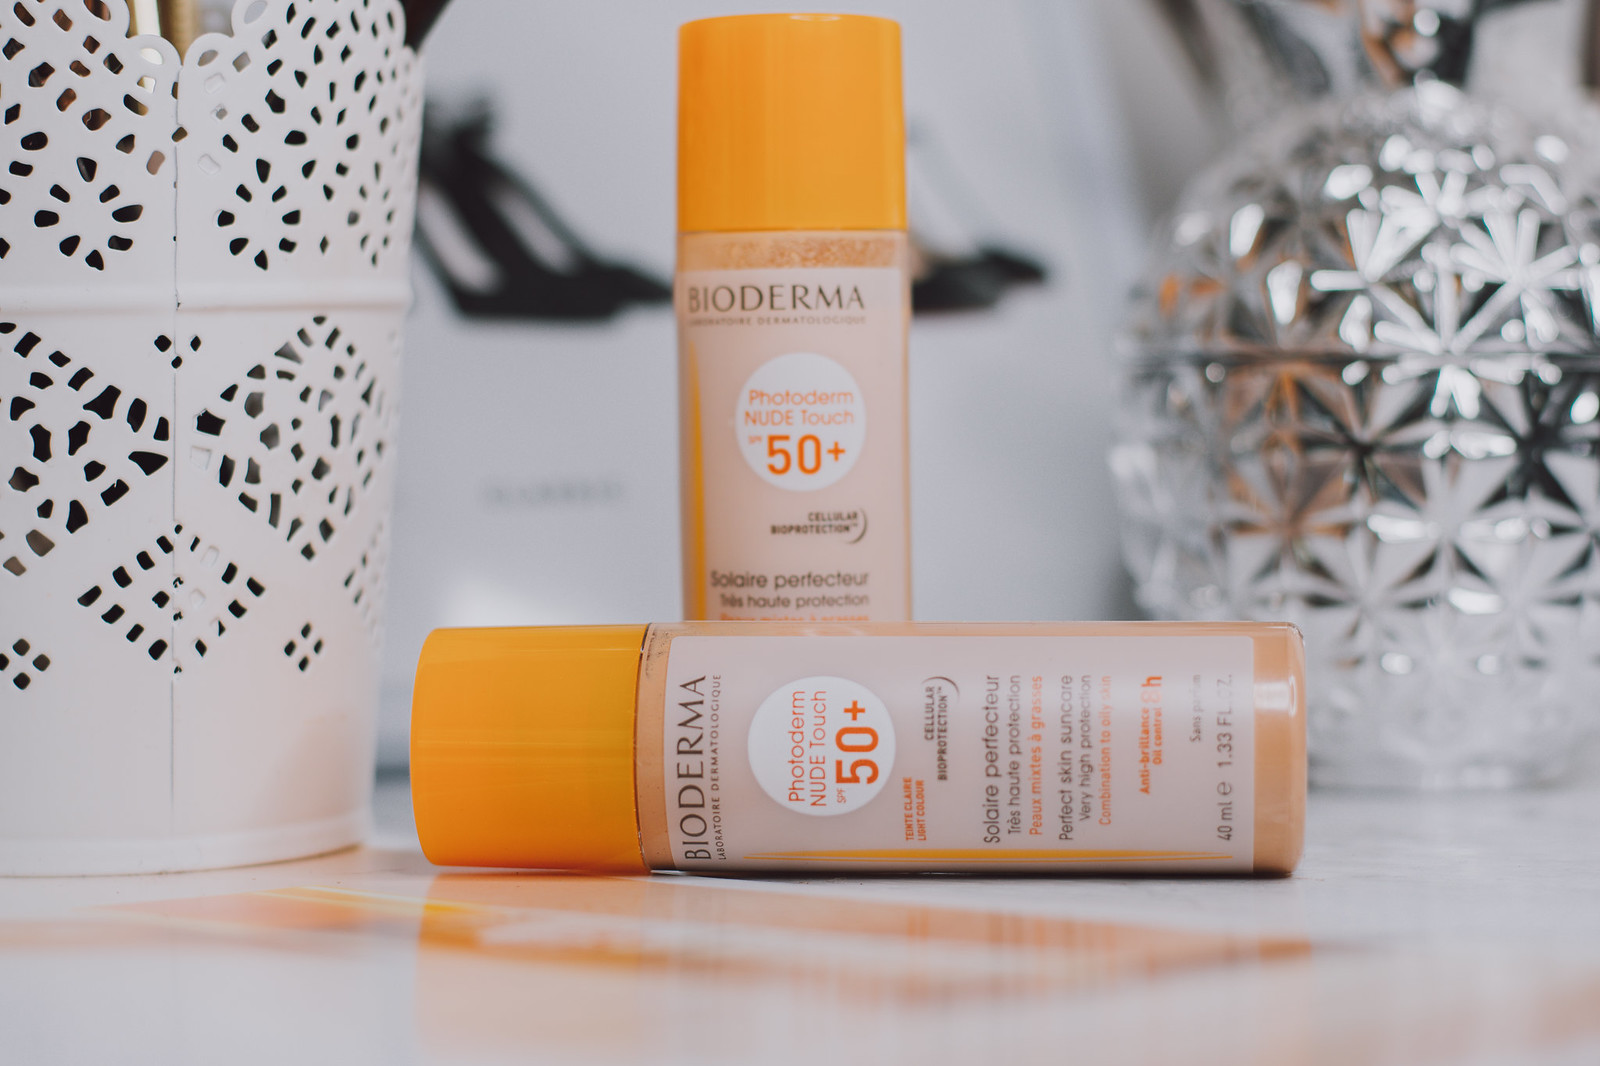 Bioderma Photoderm Nude Touch review